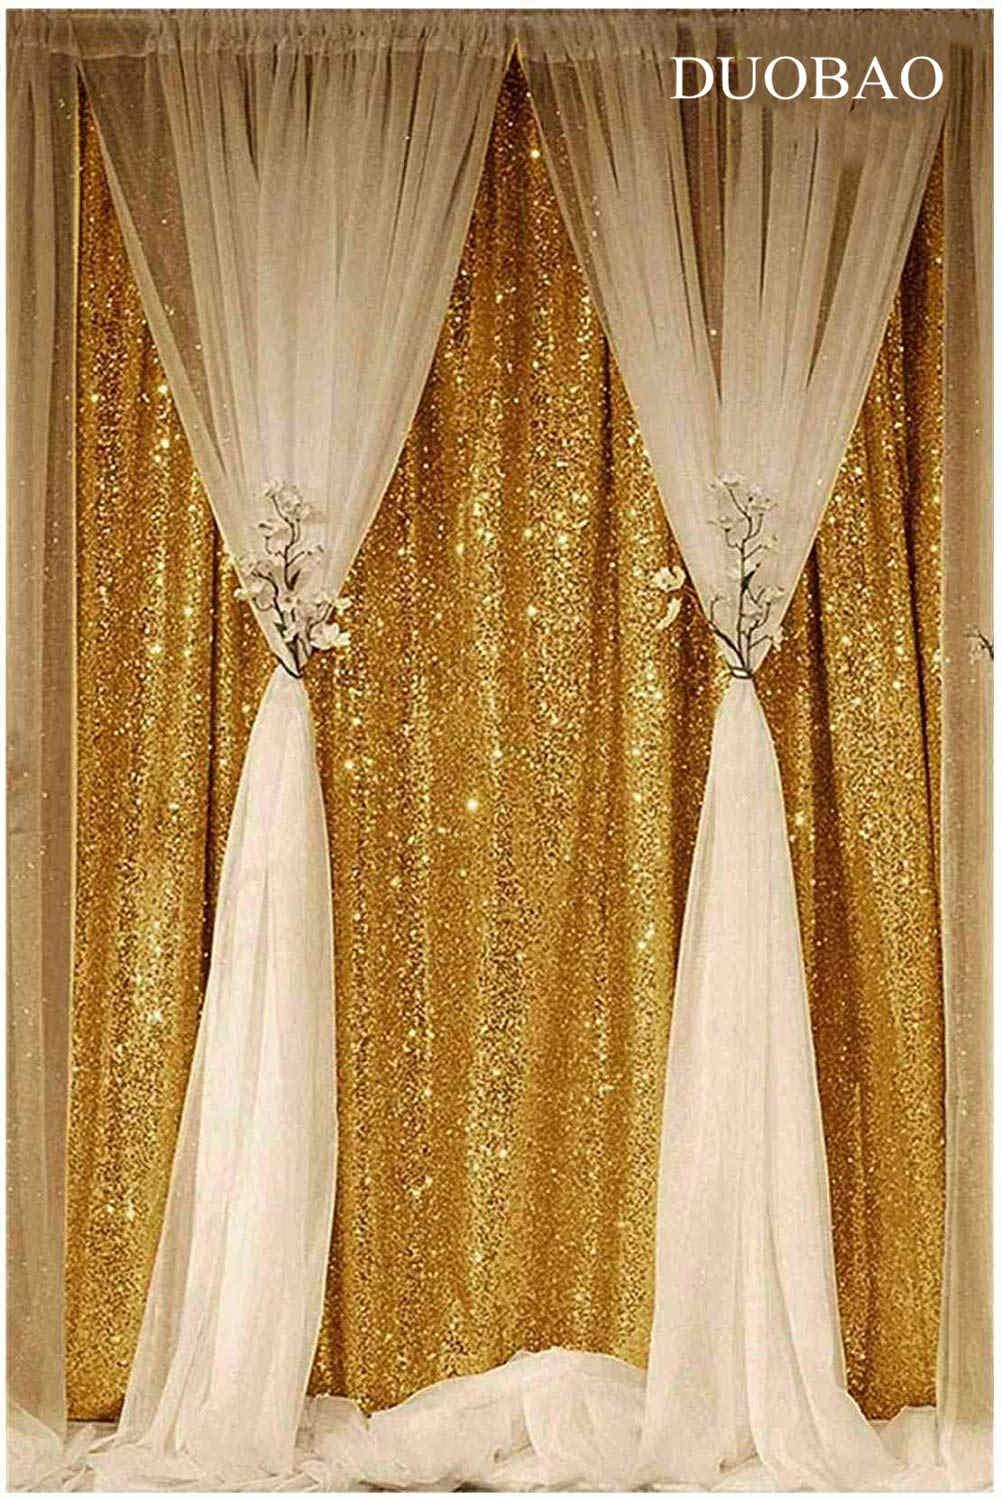 DUOBAO Sequin Backdrop Curtain 4FTx6FT Gold Glitter Background Gold Sequin Photo Backdrop Prom Party Decor~0613 by DUOBAO